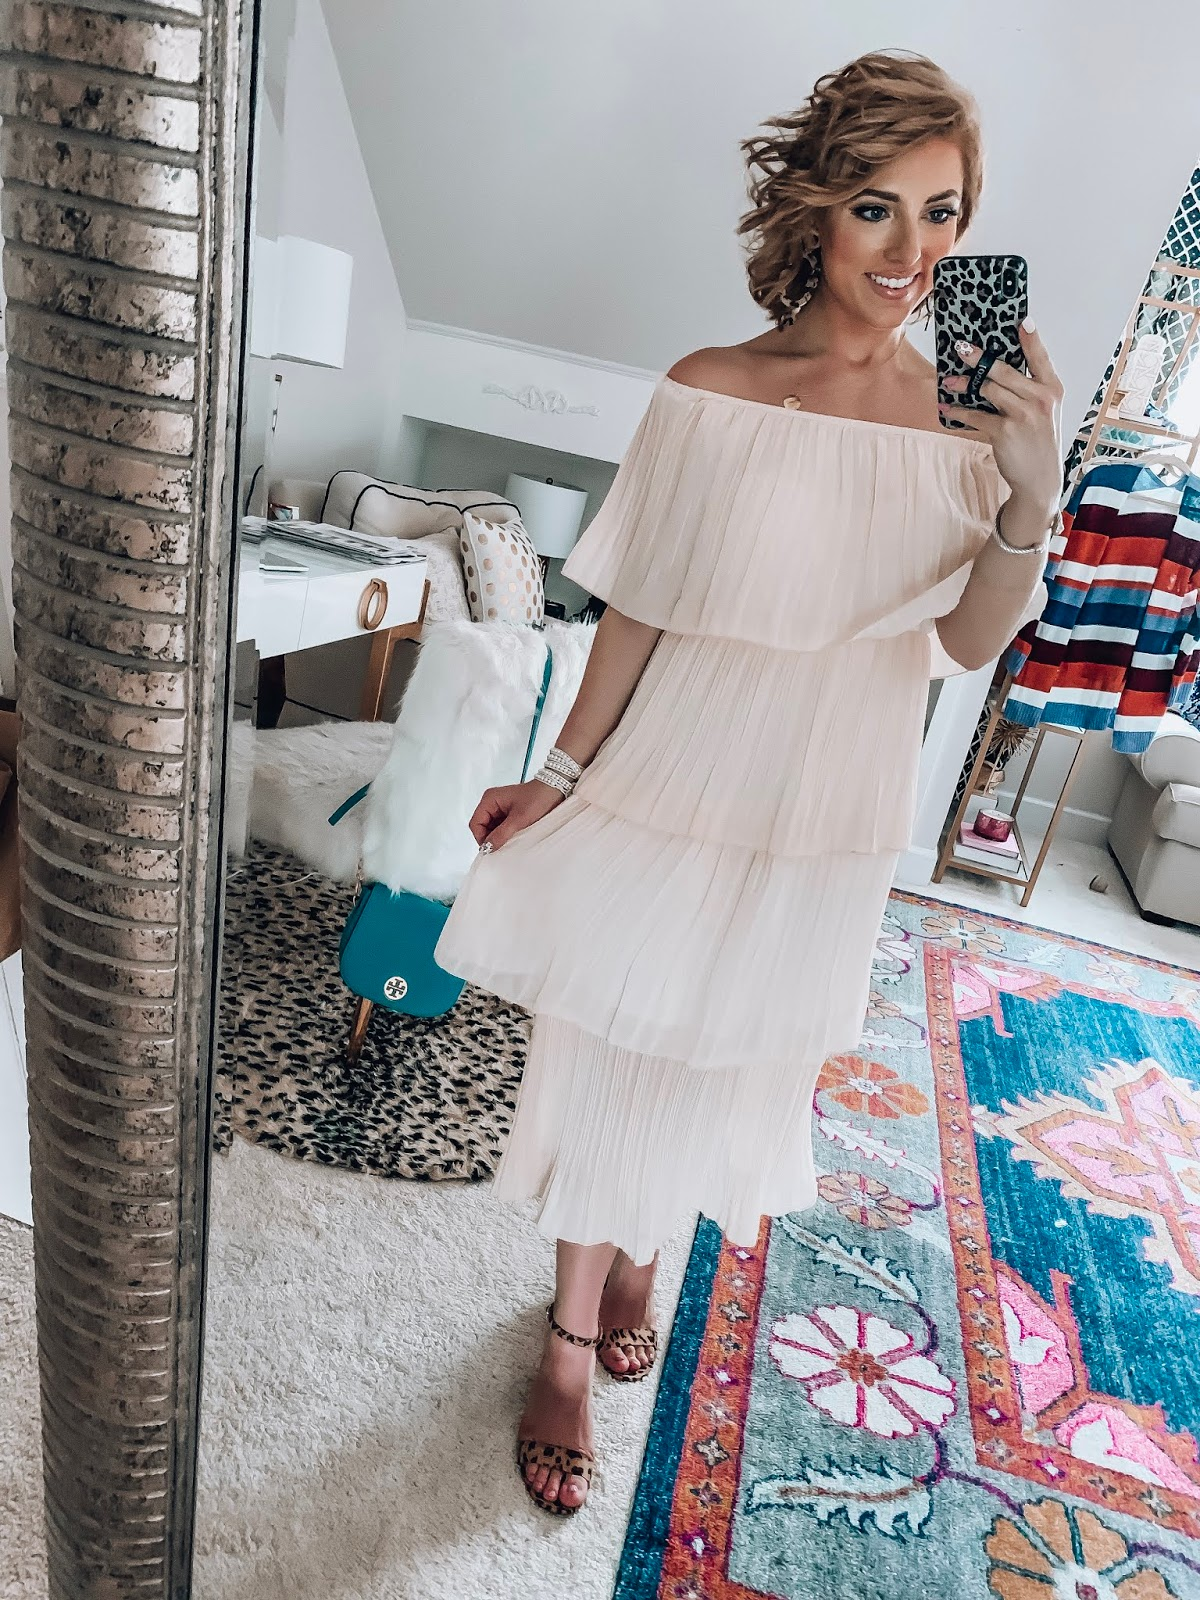 Under $30 Ruffle Pleated Midi Dress - The Perfect look for transitioning into fall - Recent Amazon Finds - Something Delightful Blog